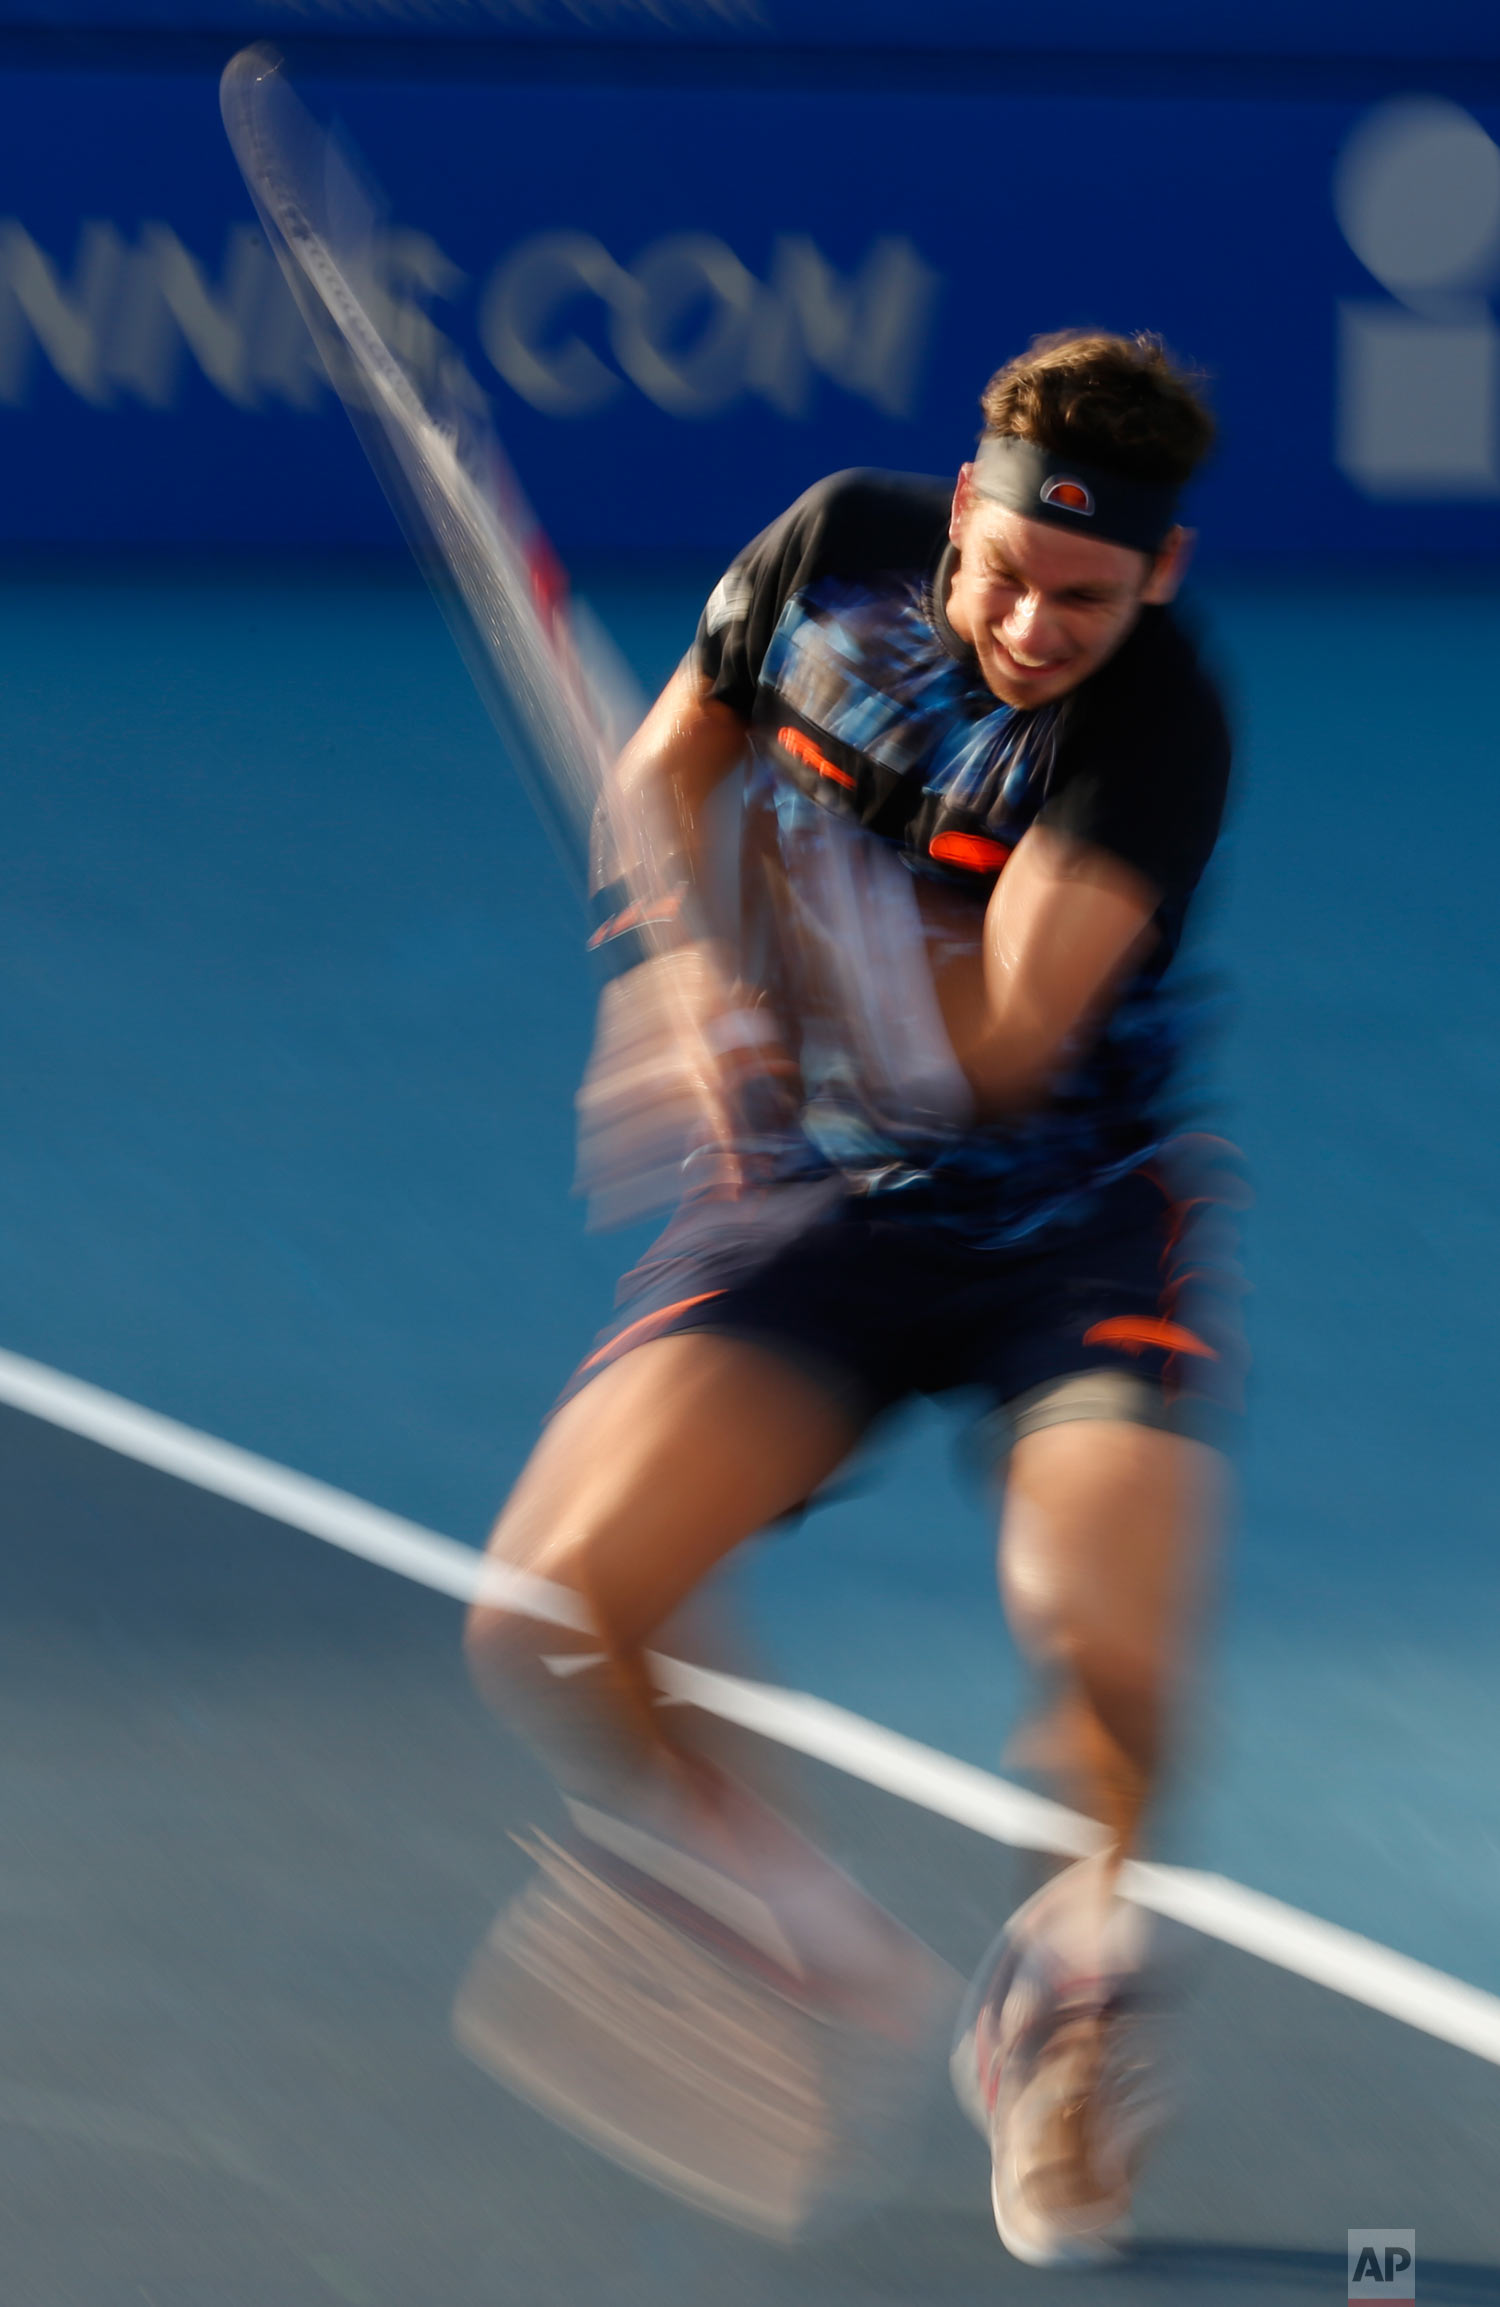 In this photo taken with a slow shutter speed, Great Britain's Cameron Norrie returns a ball in his Mexican Tennis Open quarterfinal match against Mackenzie McDonald of the U.S., in Acapulco, Mexico, Feb. 28, 2019. (AP Photo/Rebecca Blackwell)